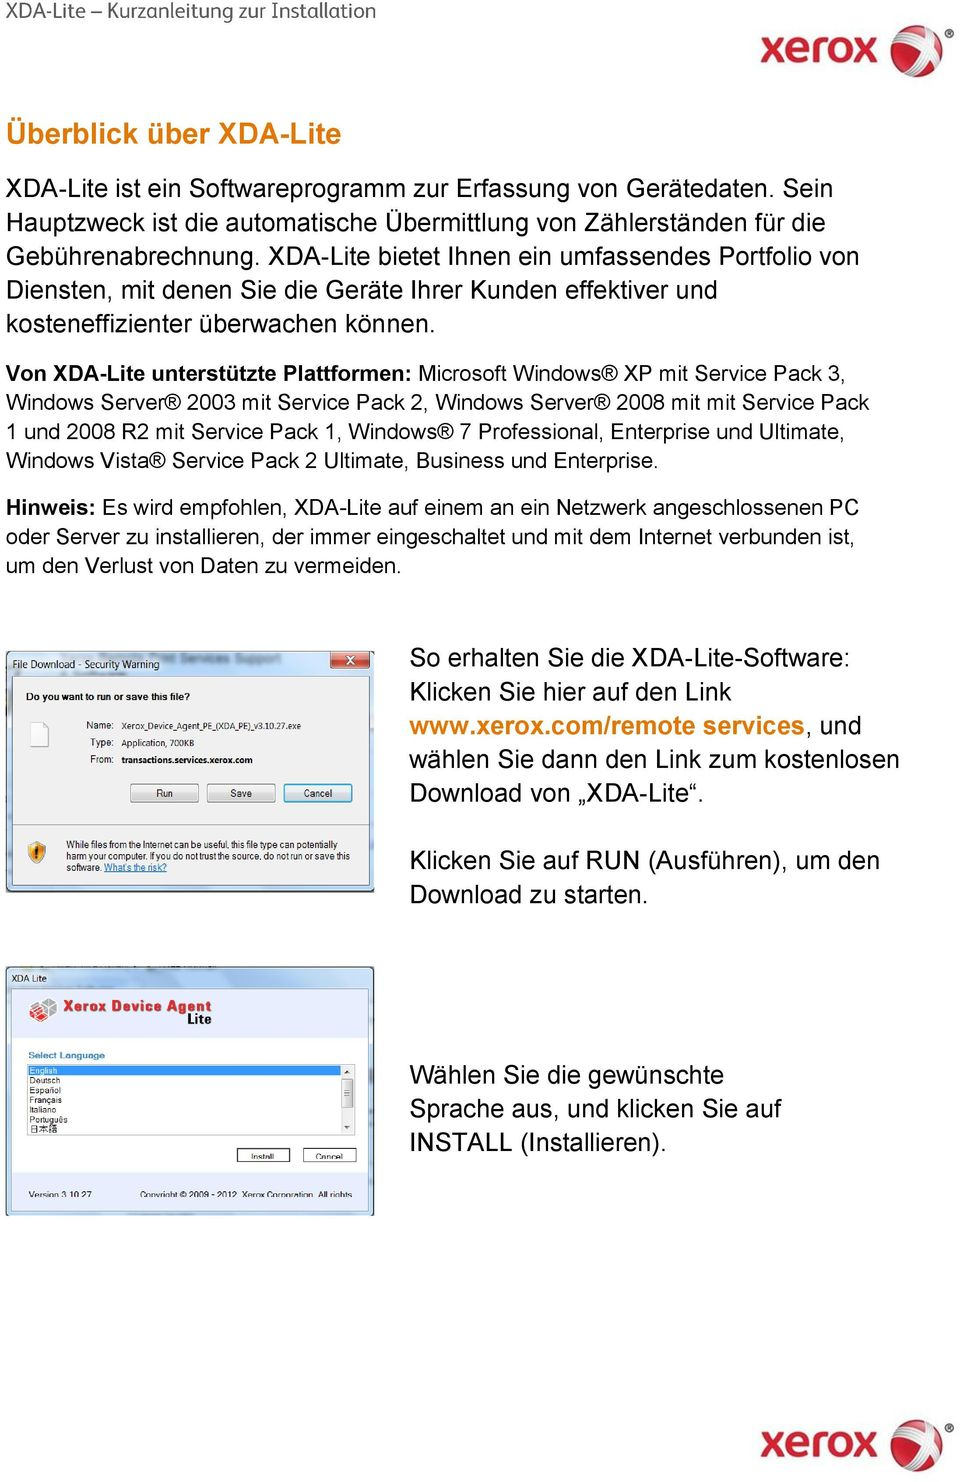 Von XDA-Lite unterstützte Plattformen: Microsoft Windows XP mit Service Pack 3, Windows Server 2003 mit Service Pack 2, Windows Server 2008 mit mit Service Pack 1 und 2008 R2 mit Service Pack 1,